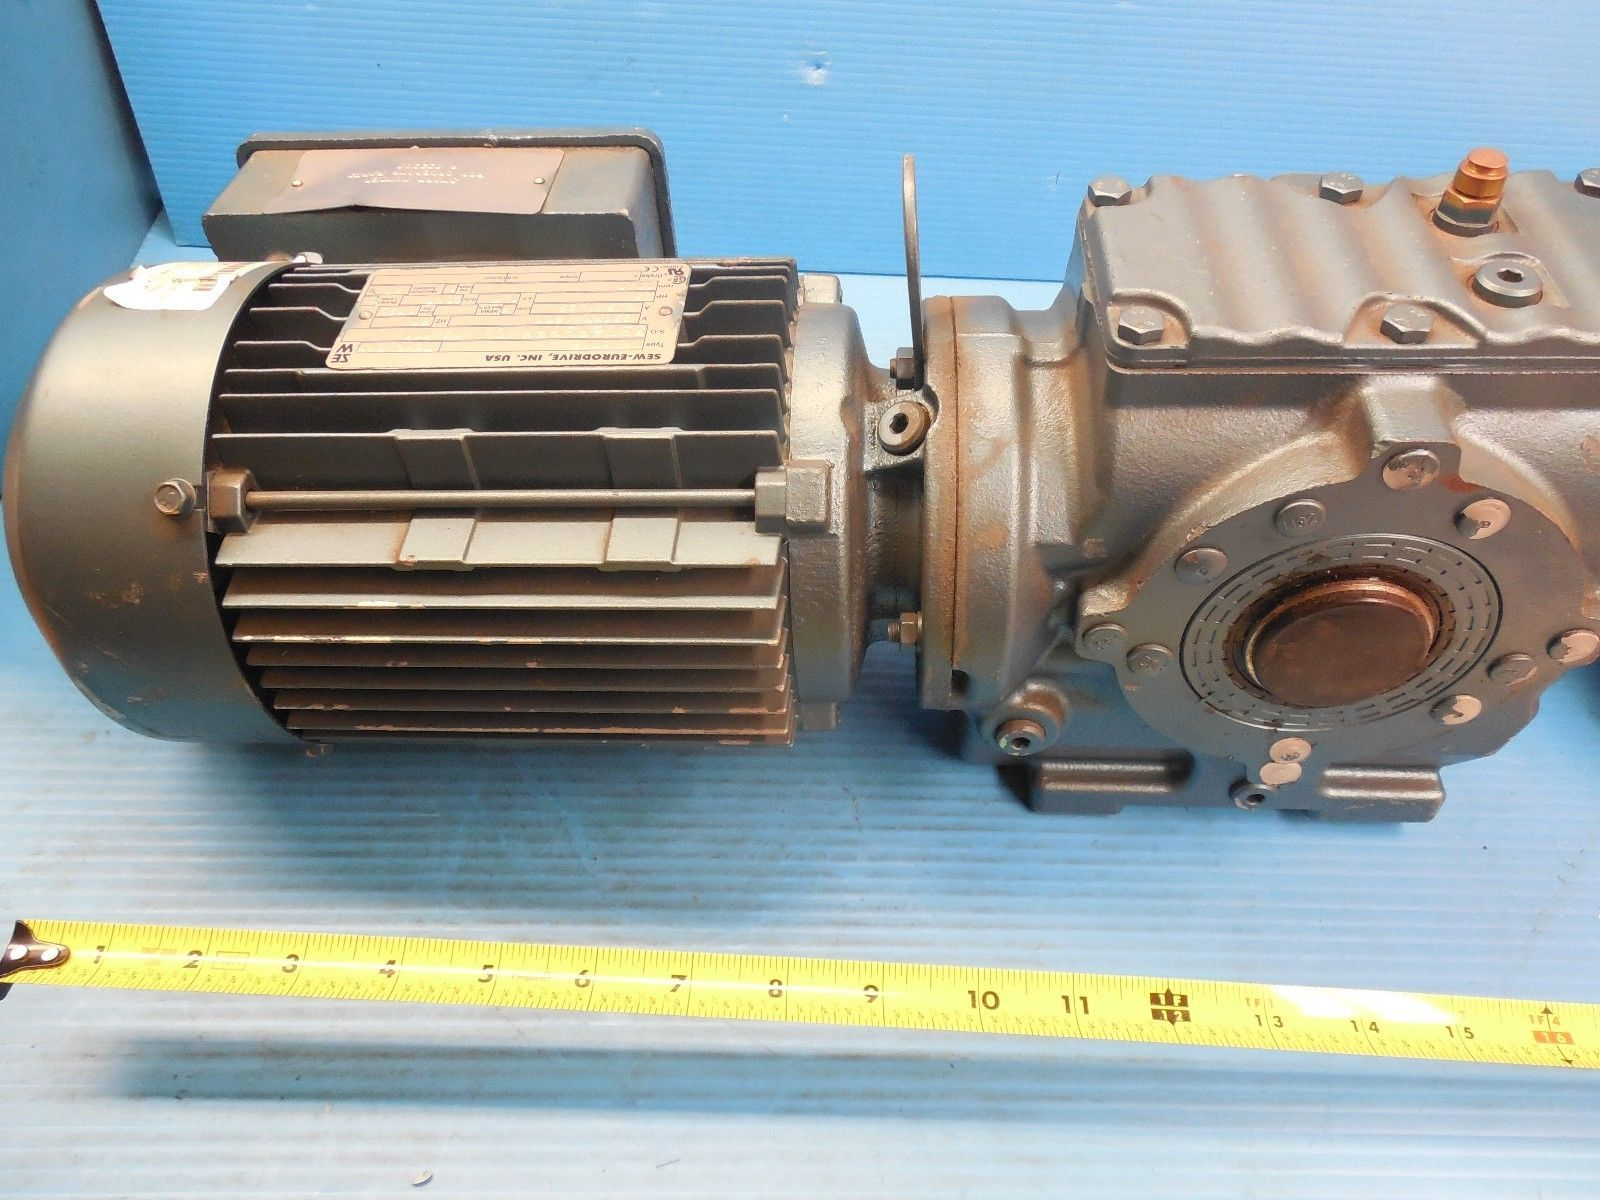 New Sew Eurodrive Sa47dt80k6 Speed Reducer With Dft80k6